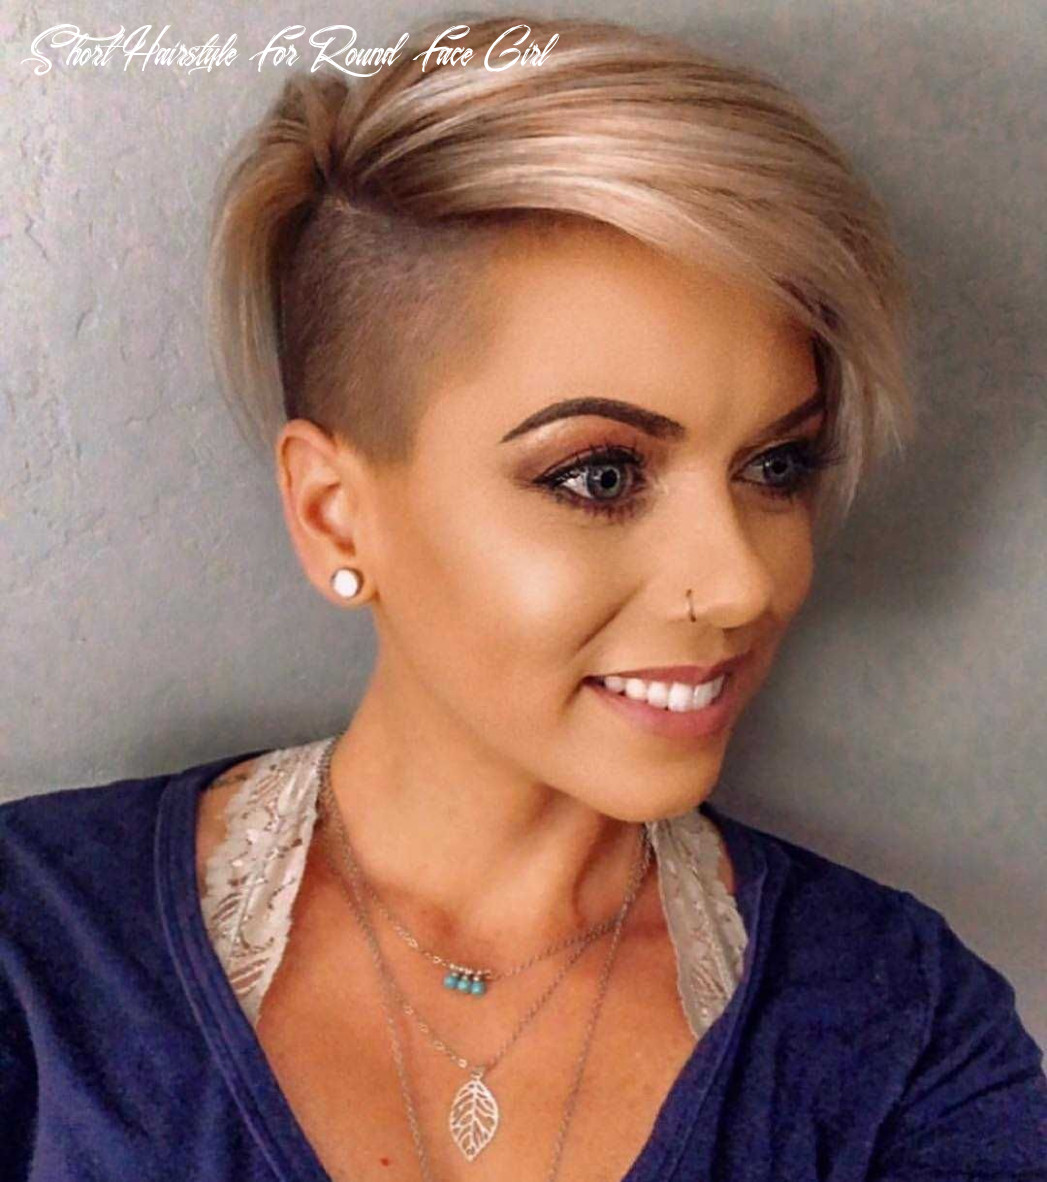 10 short hairstyles for round faces 10 10 in 10 (with images